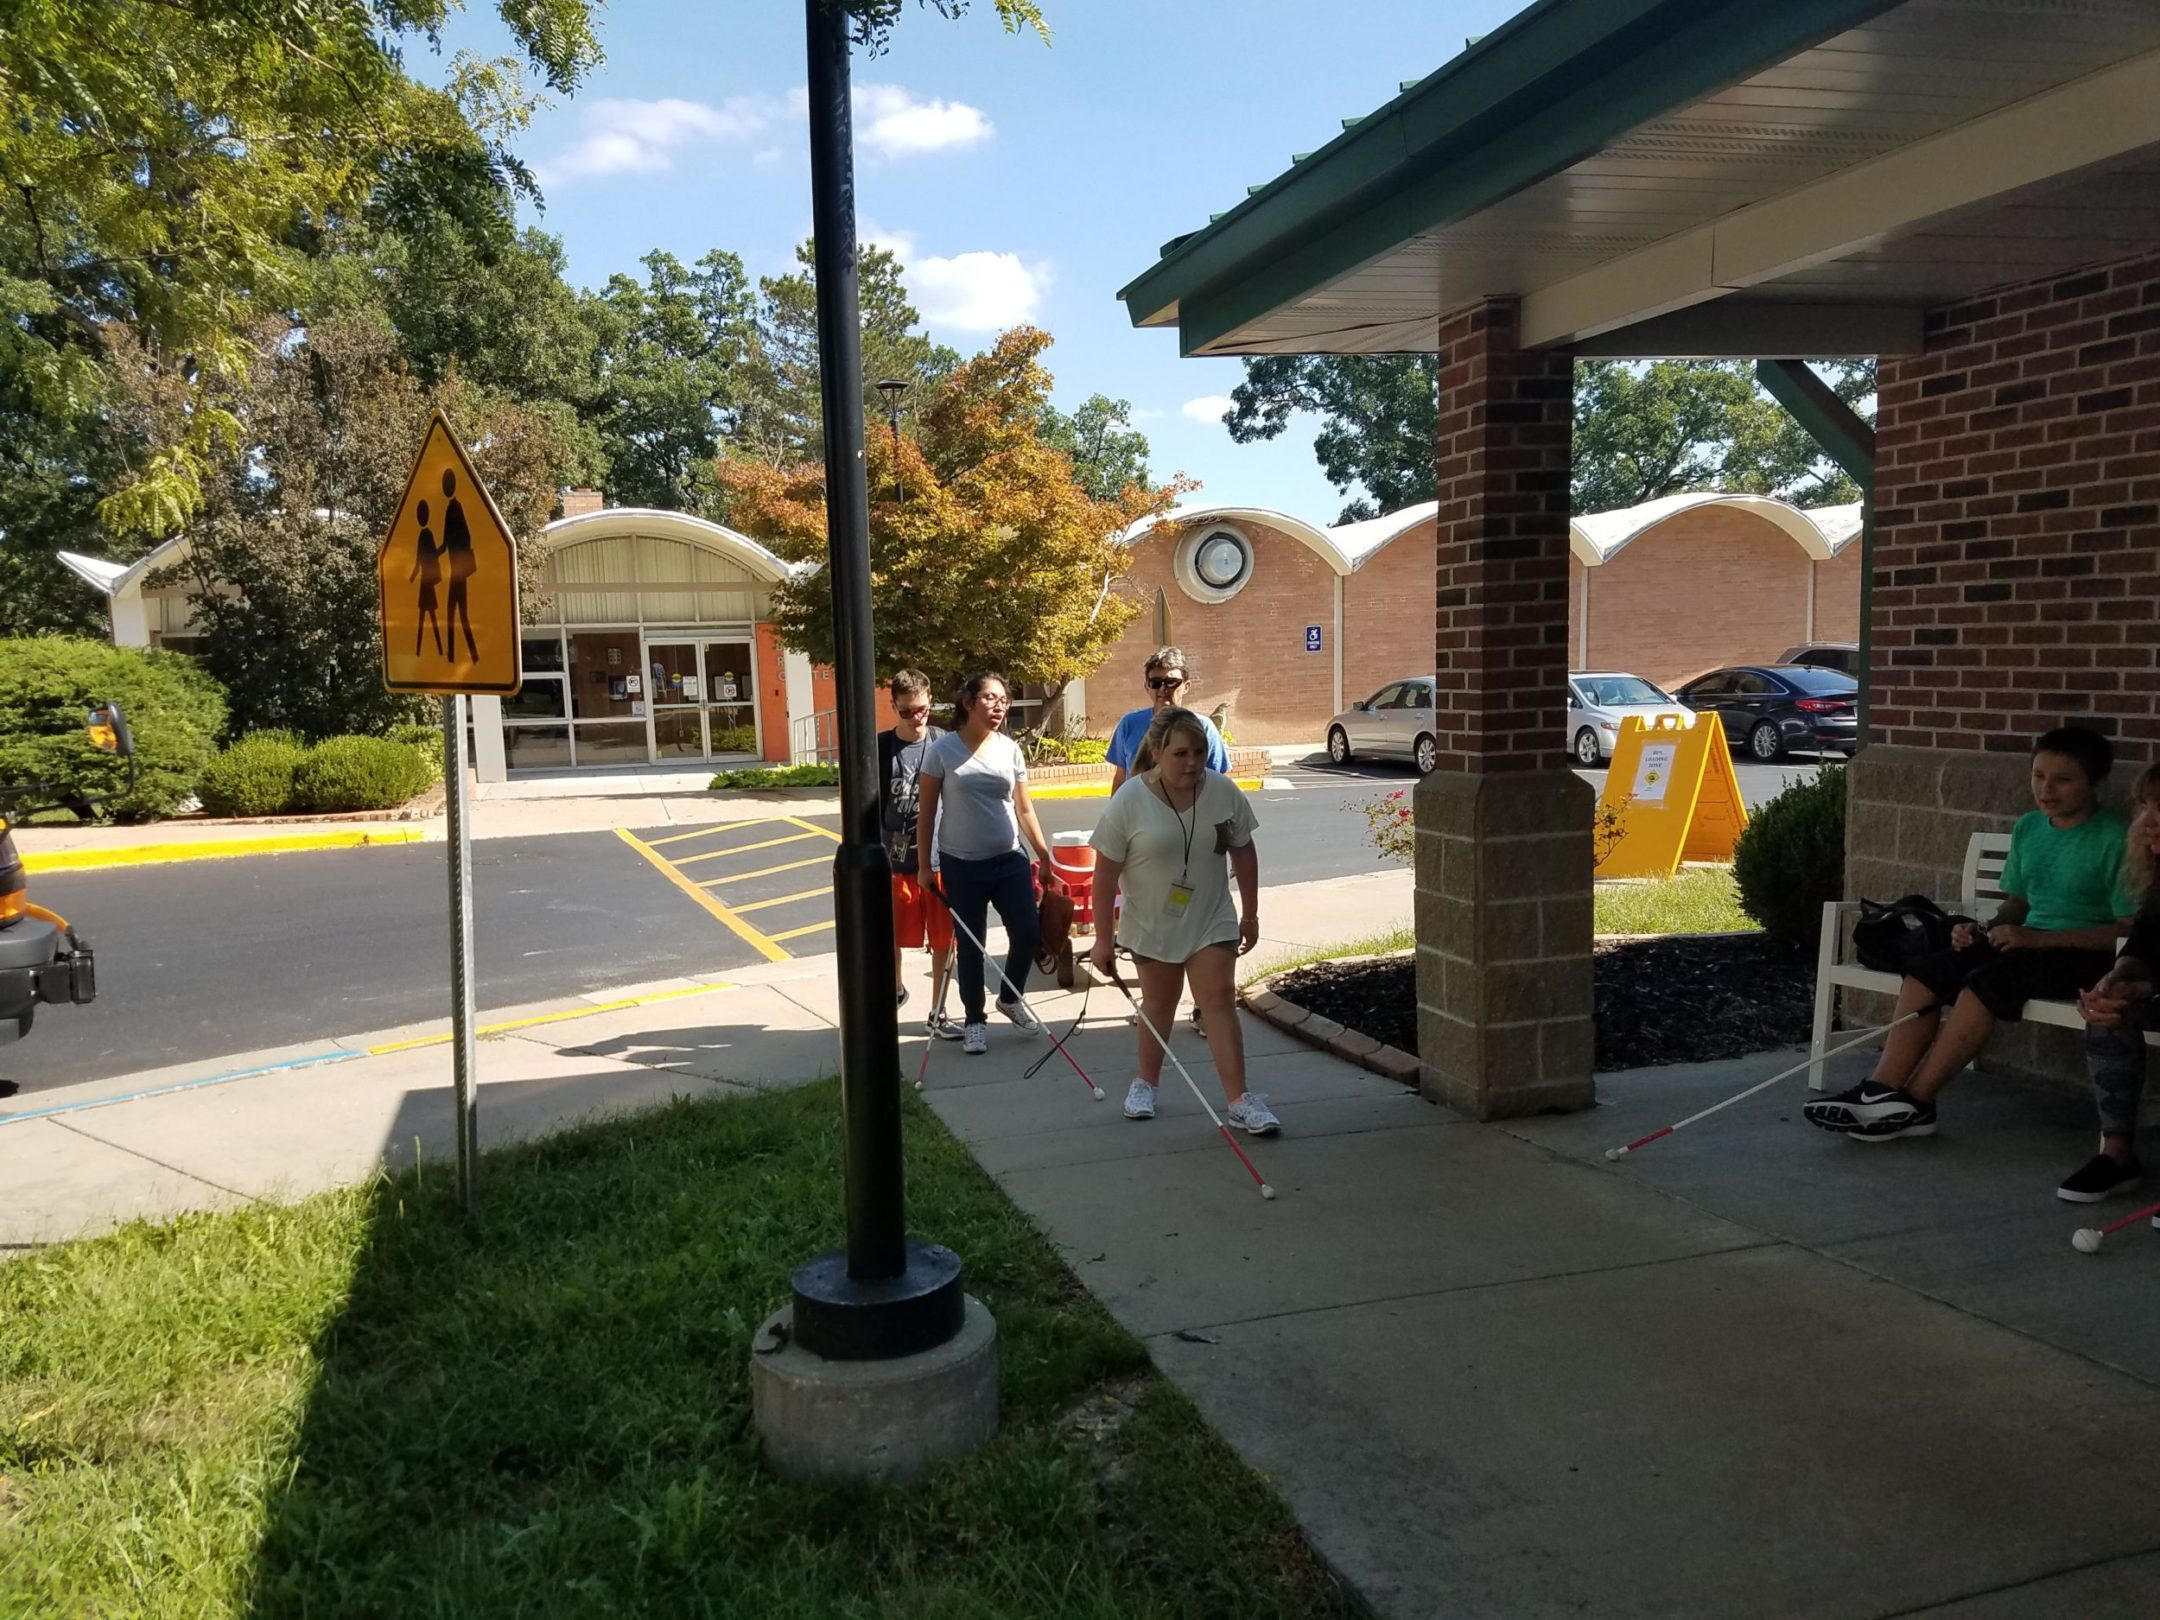 Three students arriving on campus. The recreation center in background, yellow crosswalk and then sidewalk to the back door of Edlund Hall. 2 students sitting on chairs outside the cottage as students walk by.